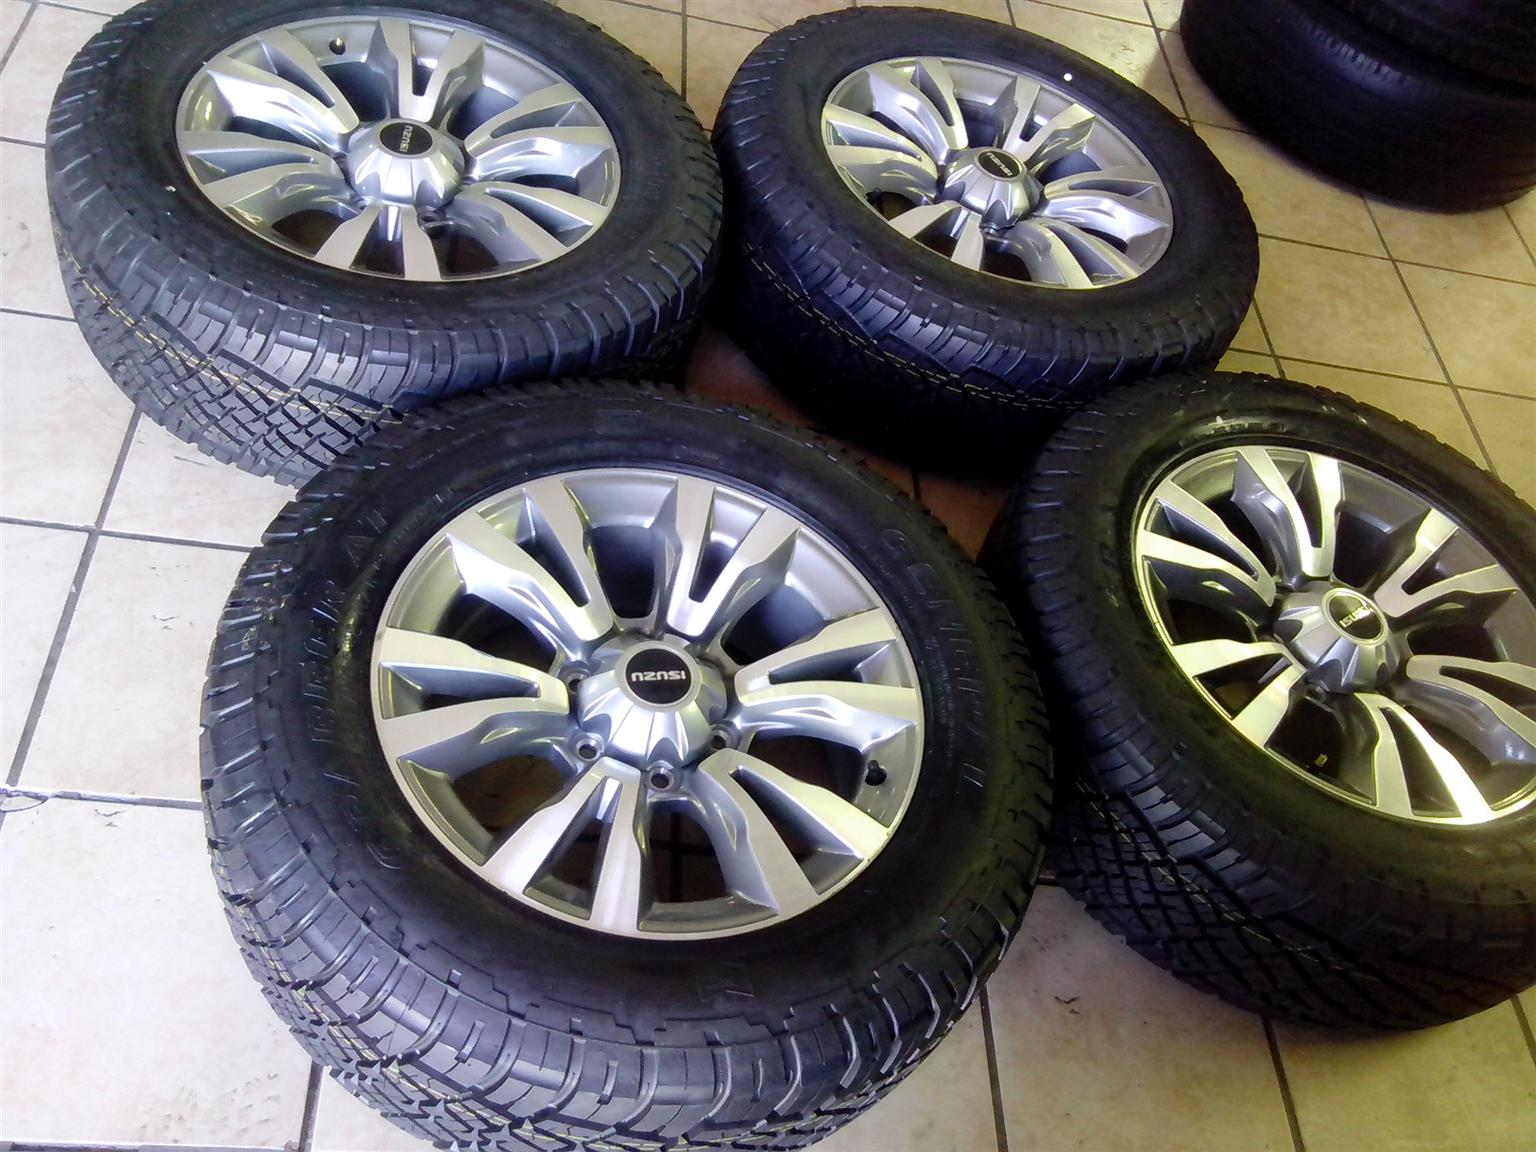 18 Inch Rims And Tires >> Isuzu 18 Inch Set Of Mags With Caps And Brand New 255 60 18 General Grabber A T Tyres Set Combo For R12999 00